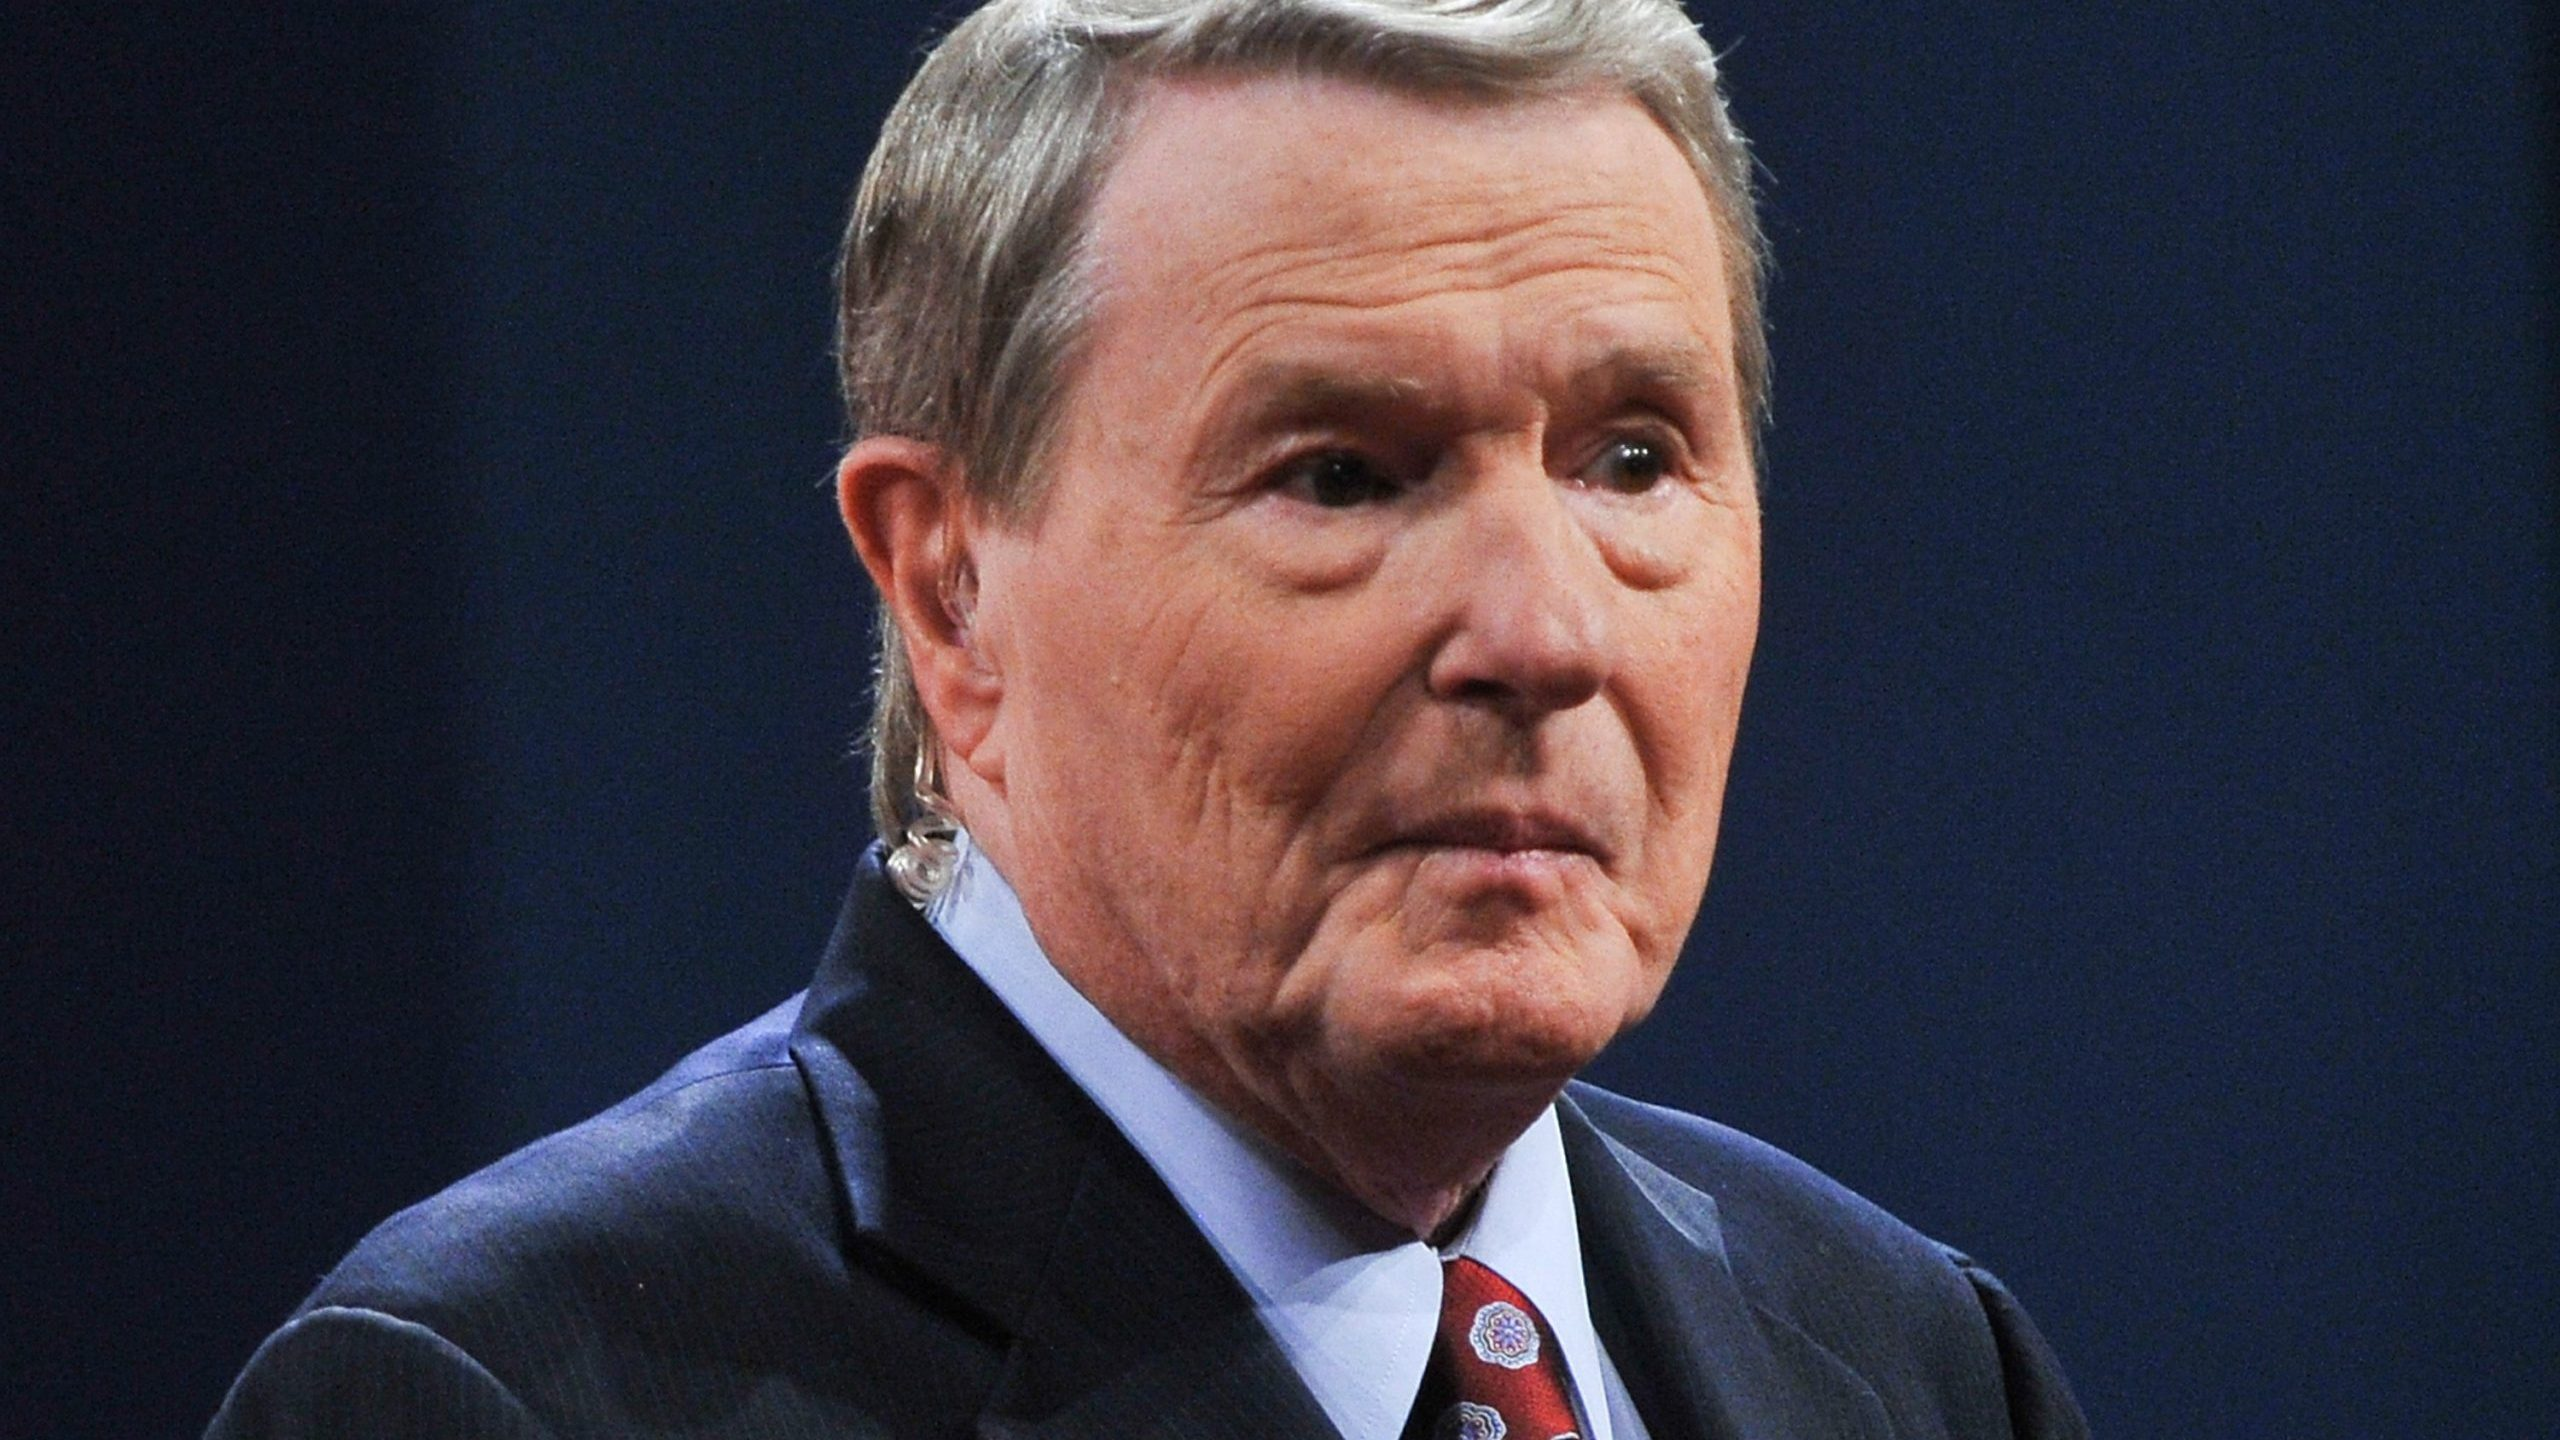 Jim Lehrer speaks to the audience before moderating the first presidential debate between President Barack Obama and Republican Mitt Romney in Denver on Oct. 3, 2012. (Credit: NICHOLAS KAMM/AFP/GettyImages)